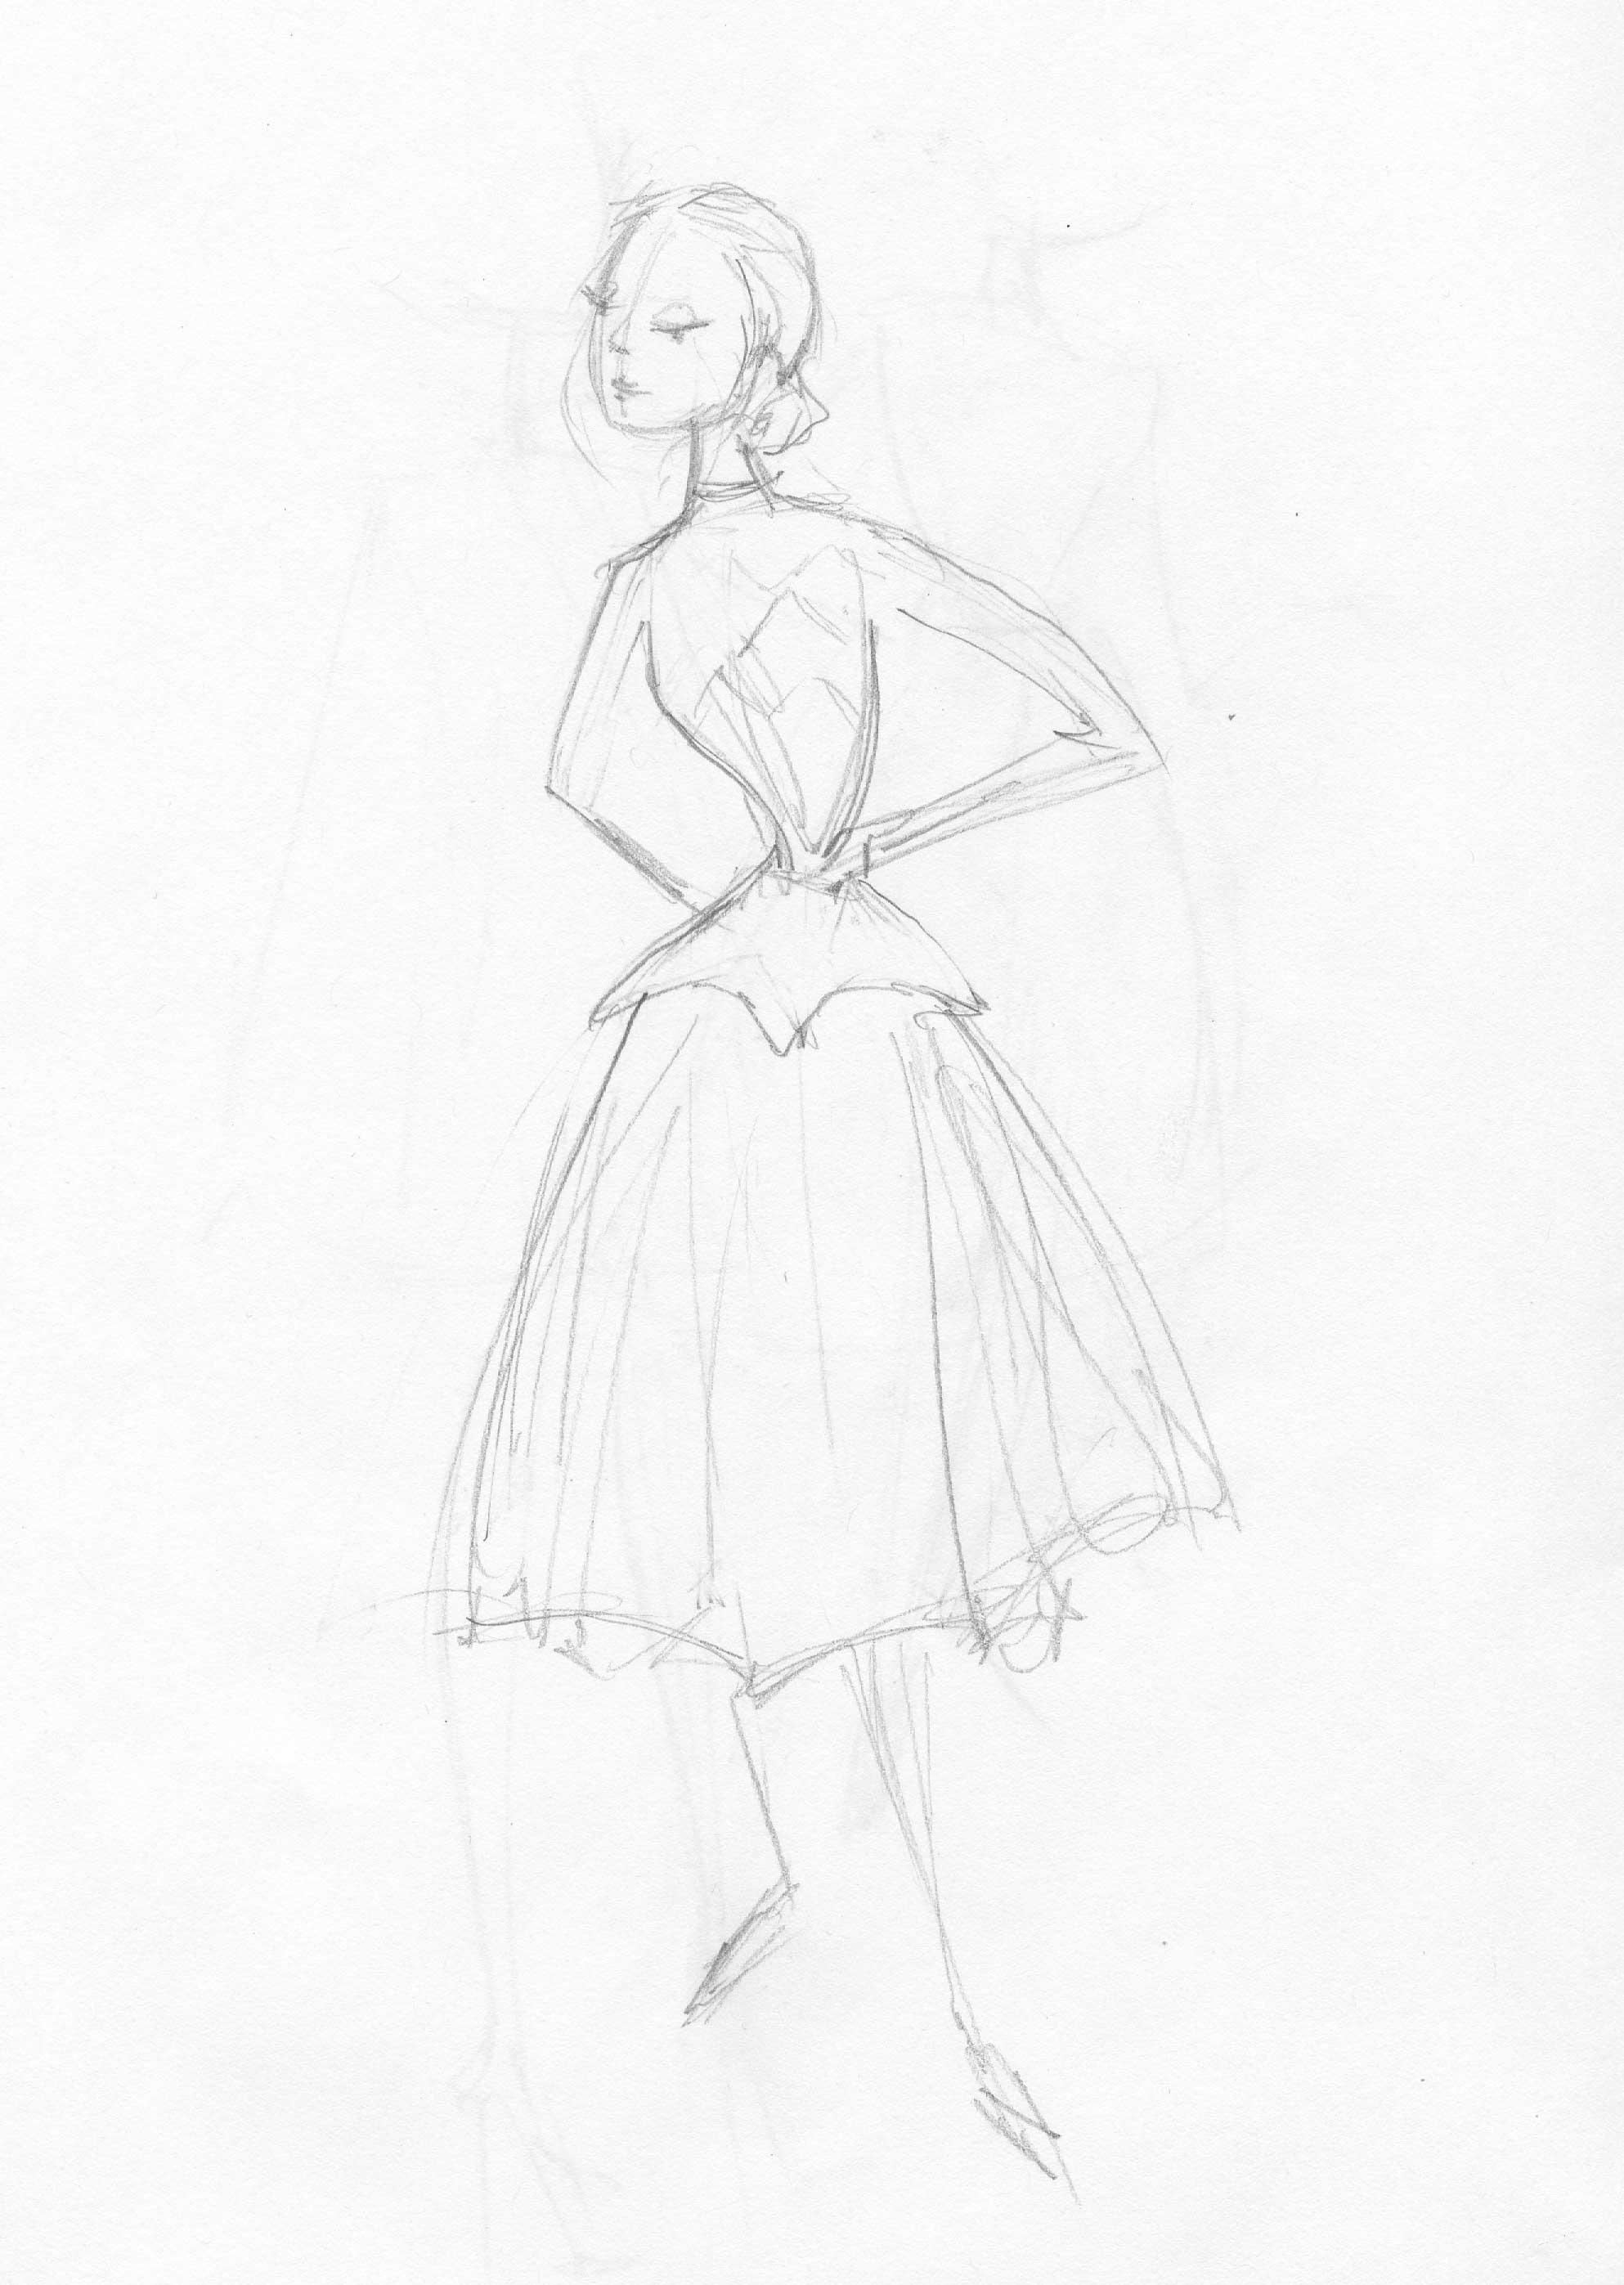 *(SKETCHES)* a walk down memory lane - image 7 - student project